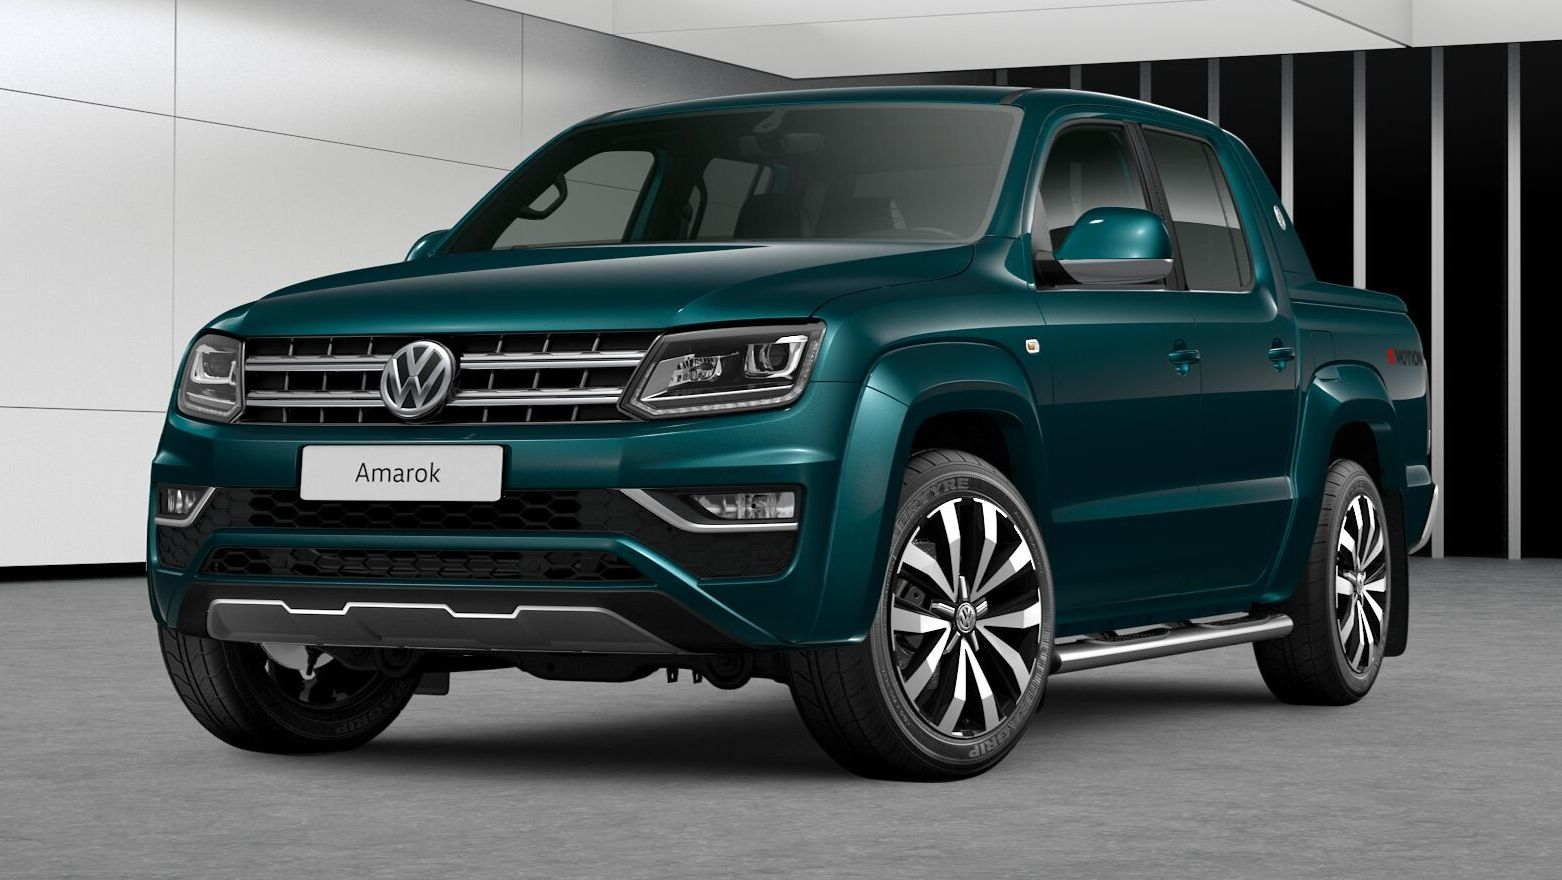 2018 Volkswagen Amarok Gets More Powerful 3 0 V6 Tdi